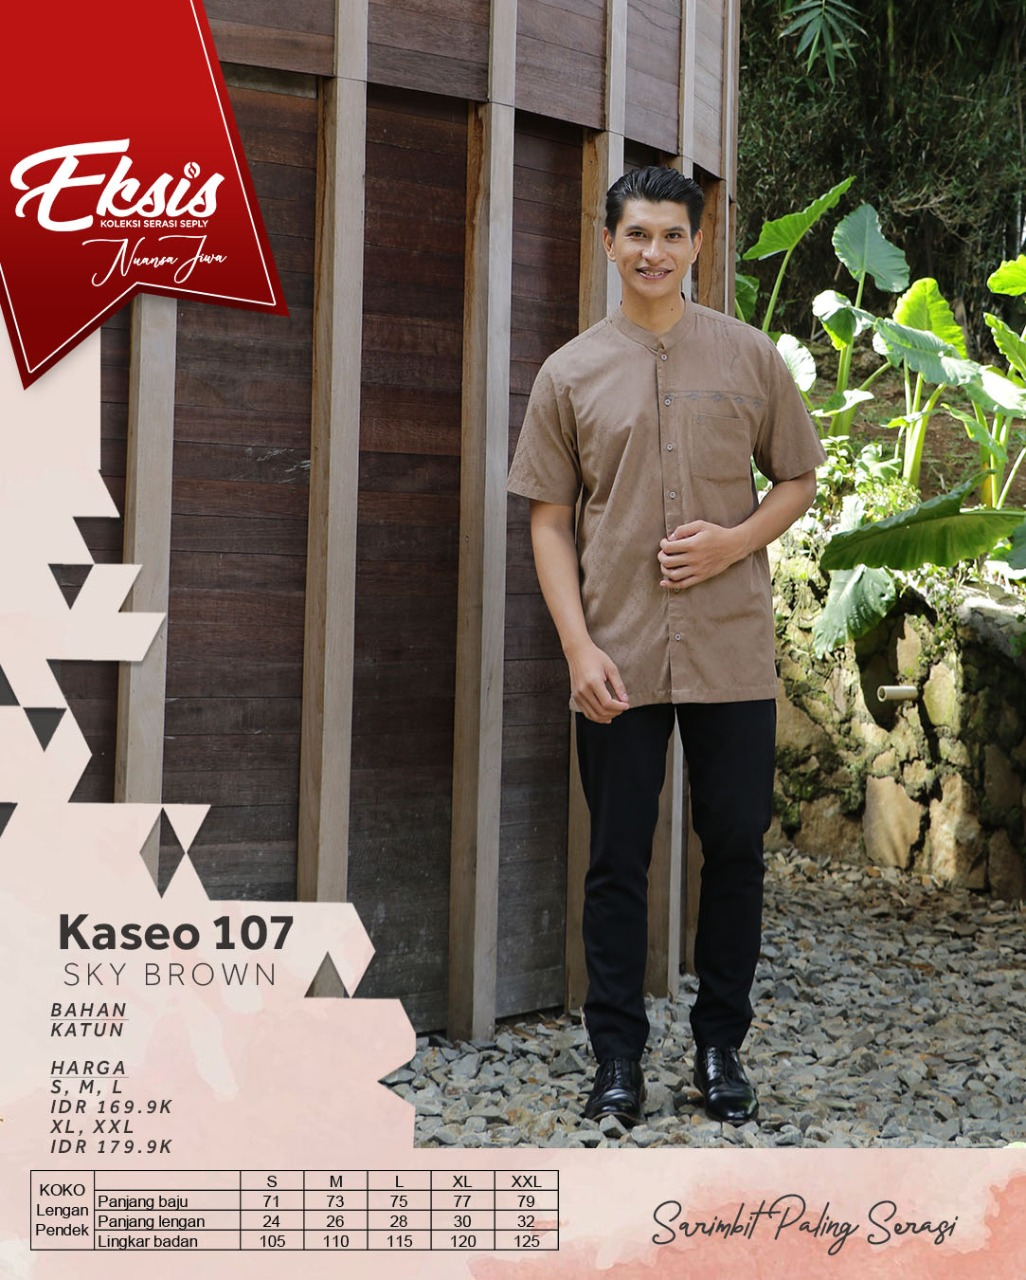 Koko Dewasa Seply Eksis 151 Sky Brown